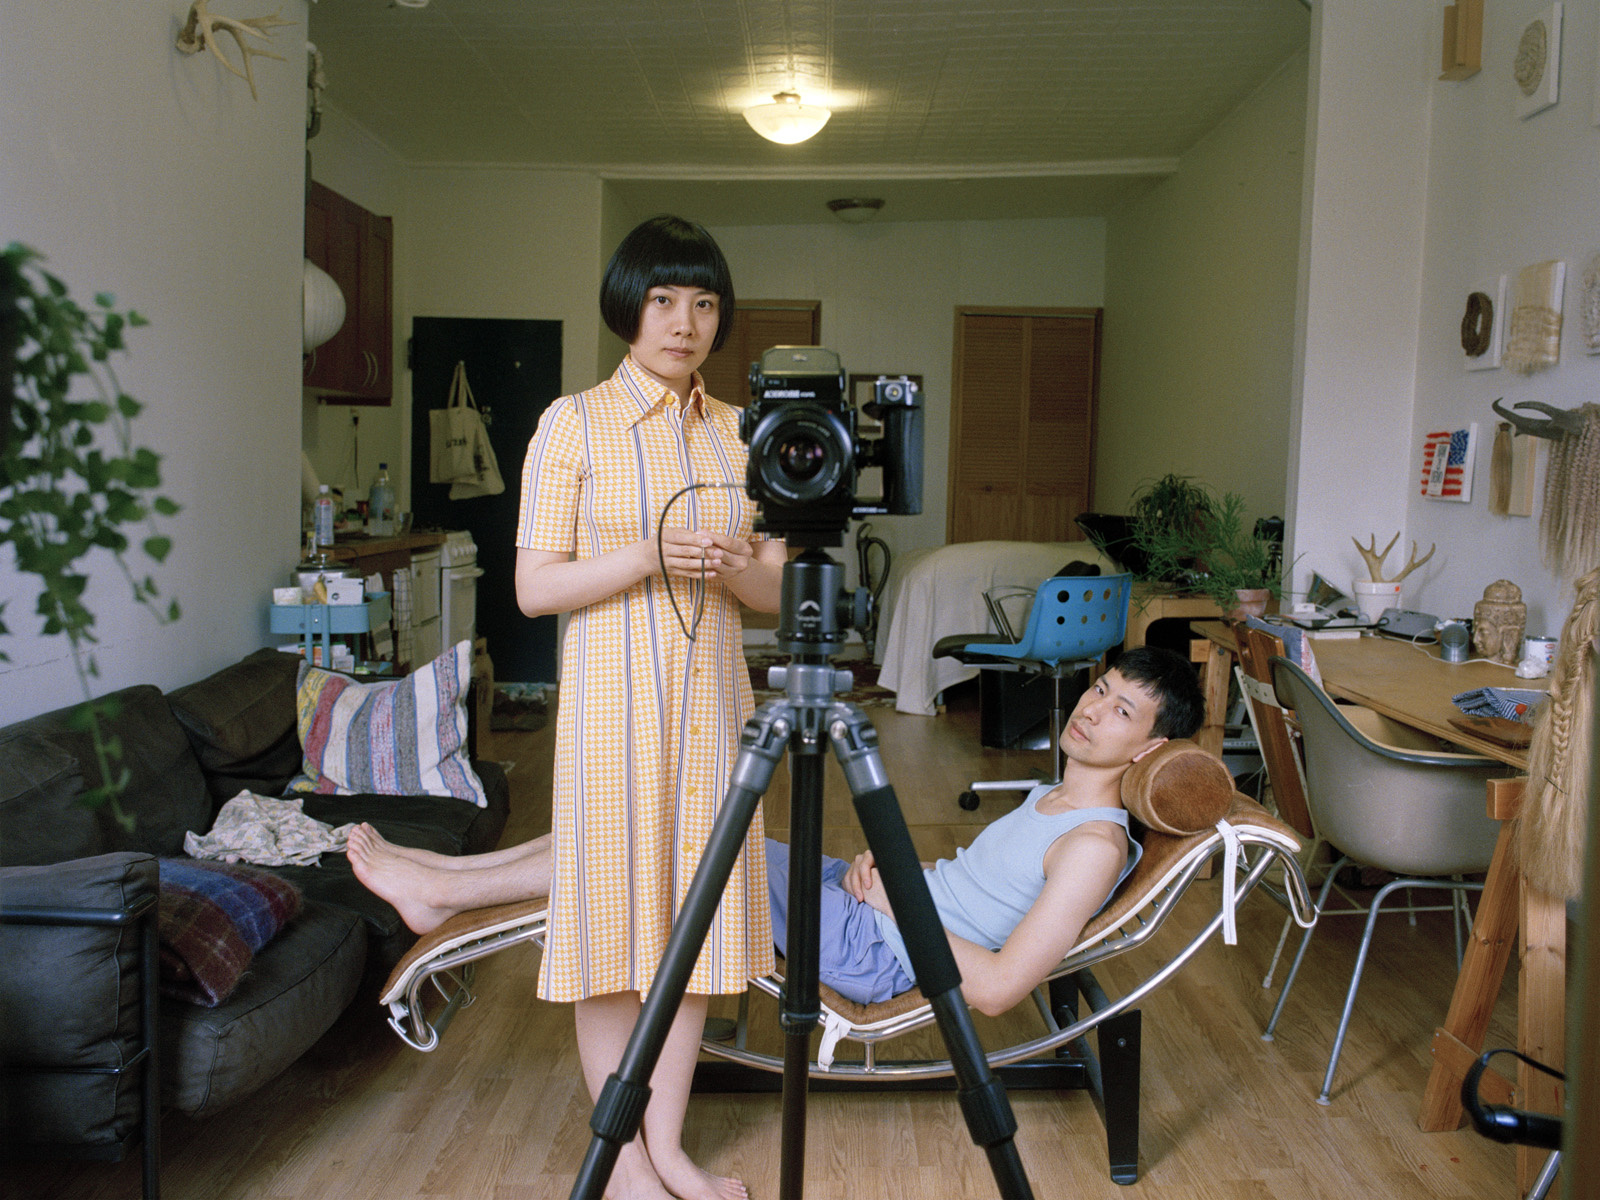 liao_2014_Photographer and her muse I.jpg